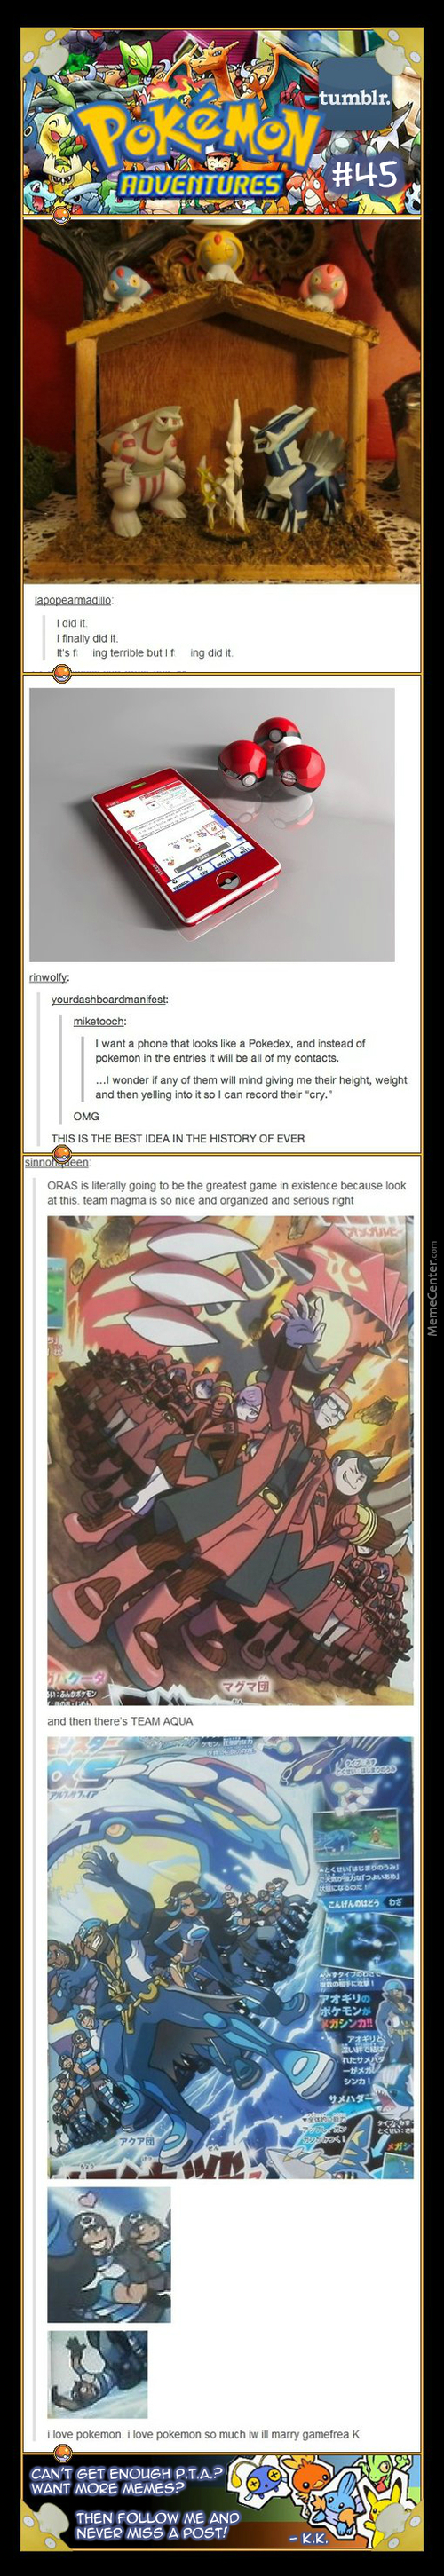 Pokemon Tumblr Adventures #45